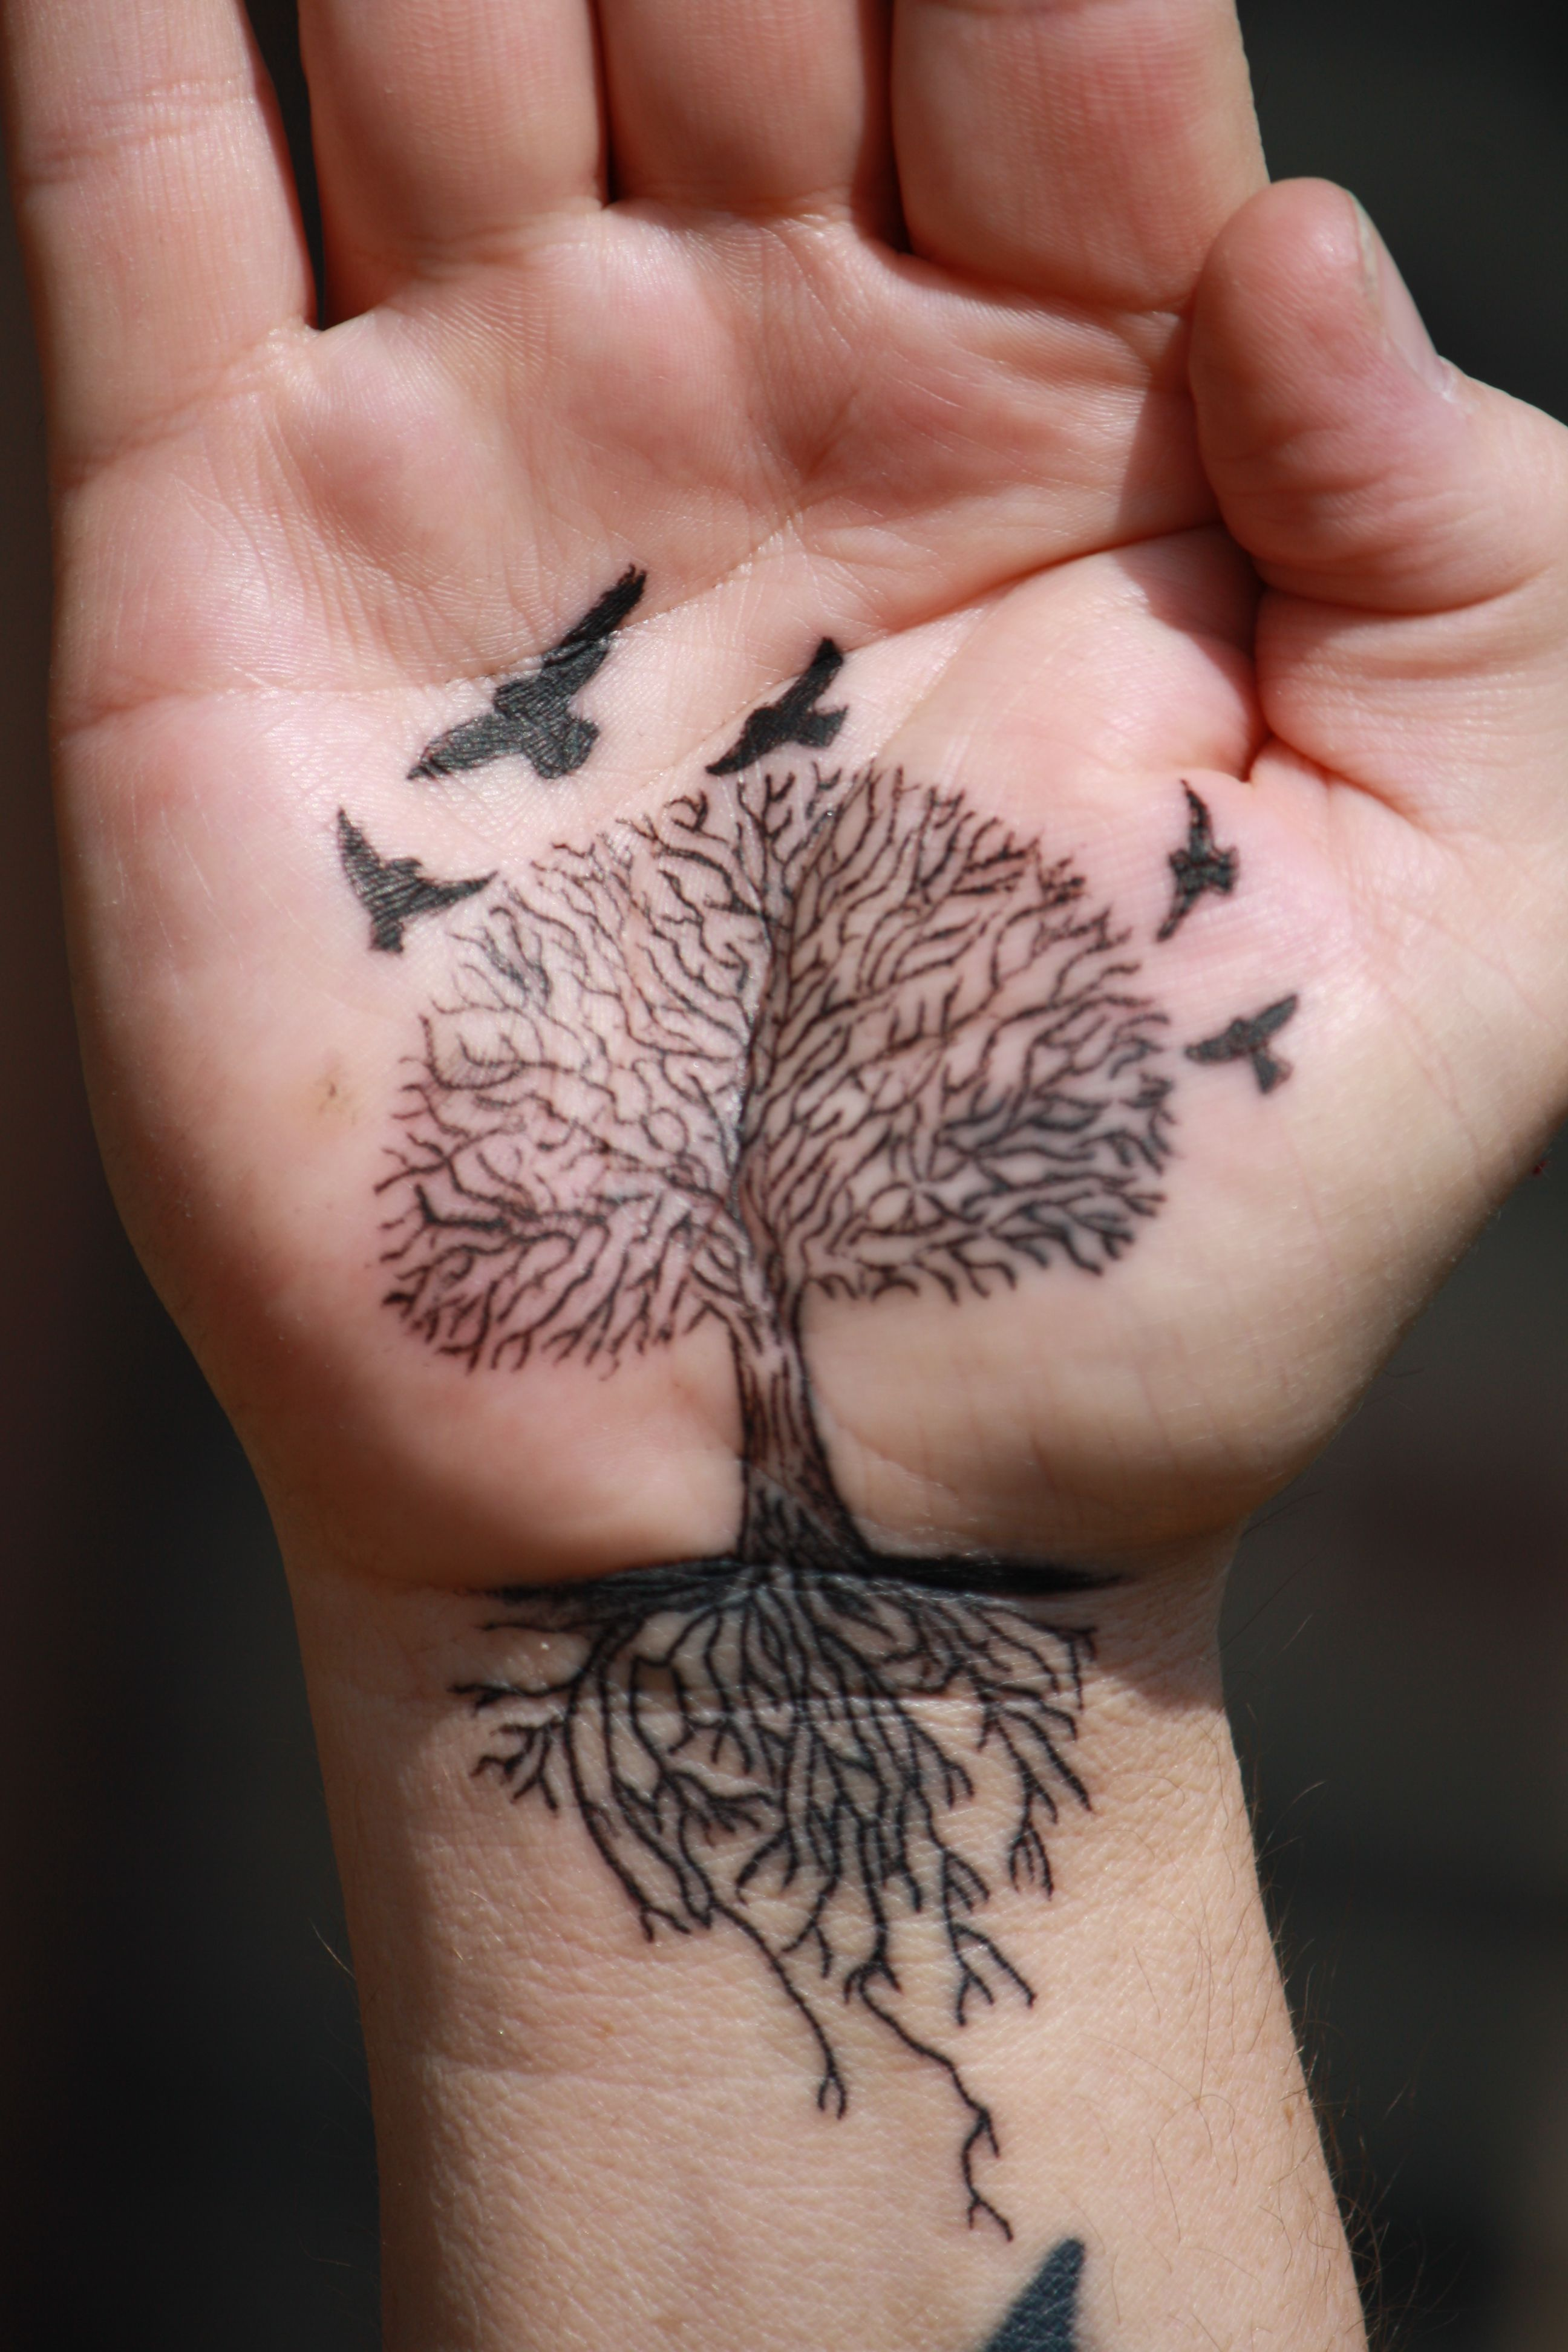 Family Tattoo Tree Tattoo Small Family Tree Tattoo Family Tattoos